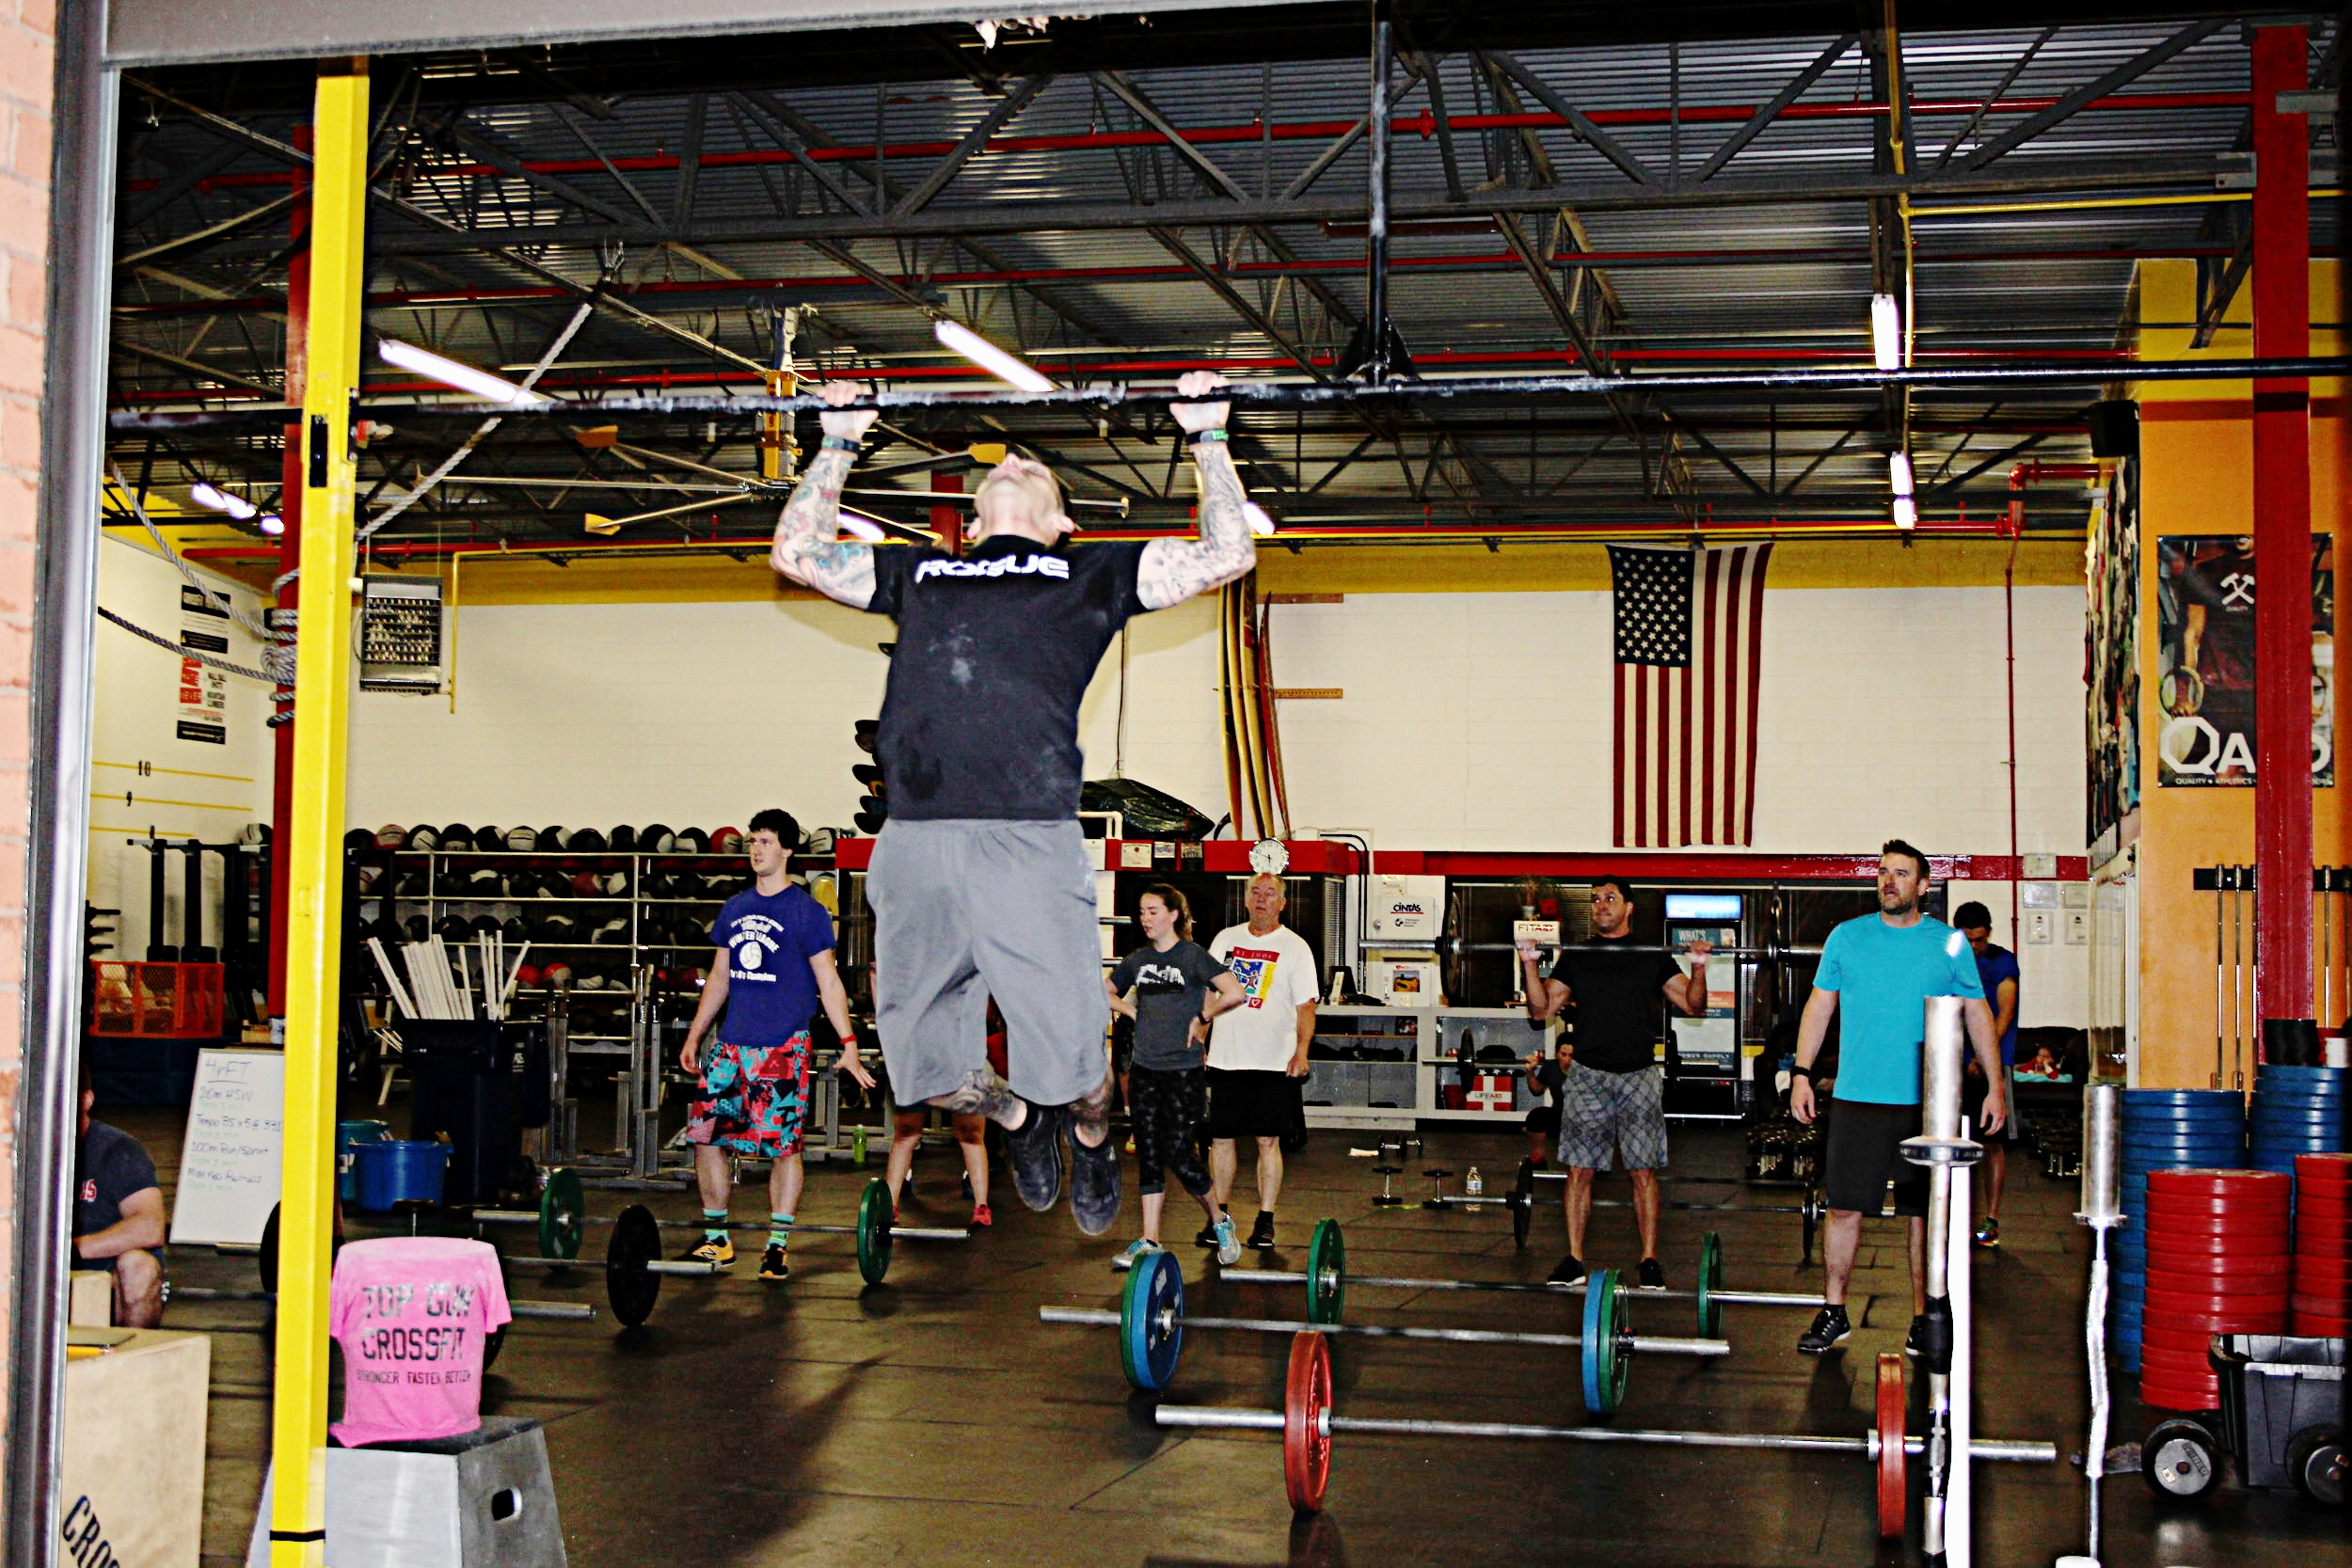 """""""Earn your results; Know your numbers. You must record your scores from the WOD's in some manner. That way when your Coach asks, """"what was your time, last time?,"""" or """"what is your 1RM Back Squat?"""", you can answer without a hitch."""" - -Coach A"""